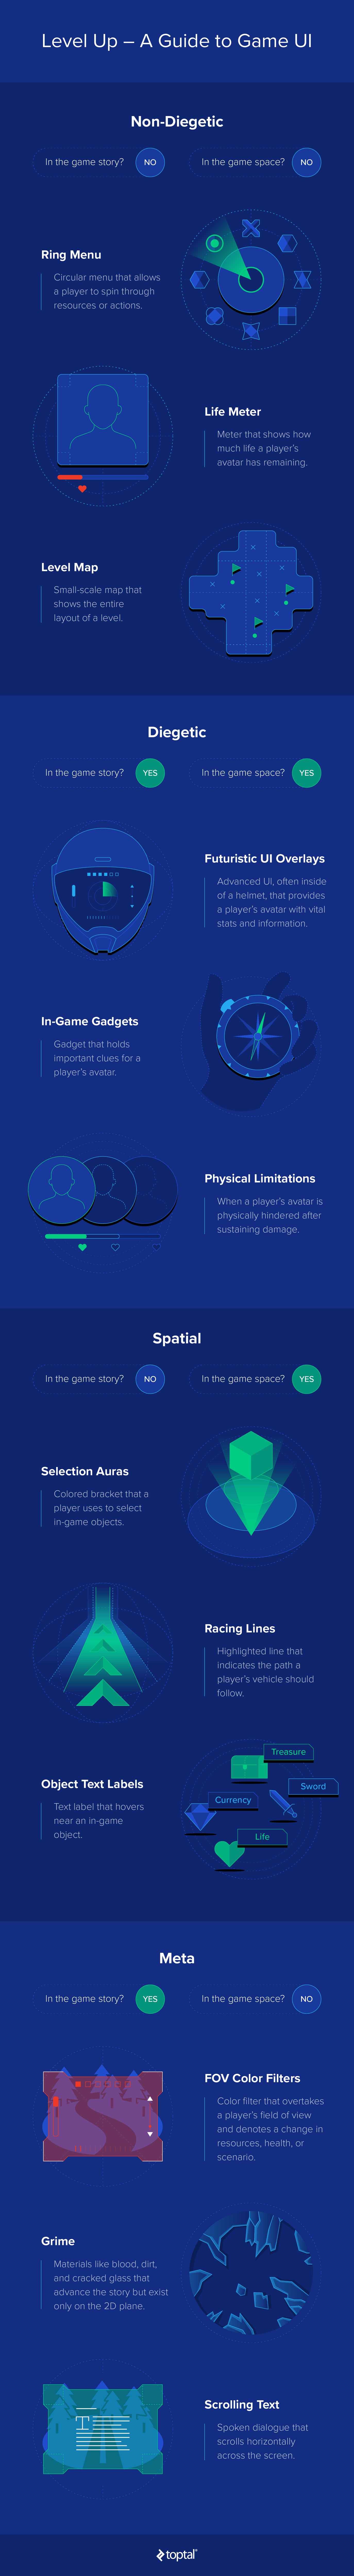 Video game UI classification infographic.